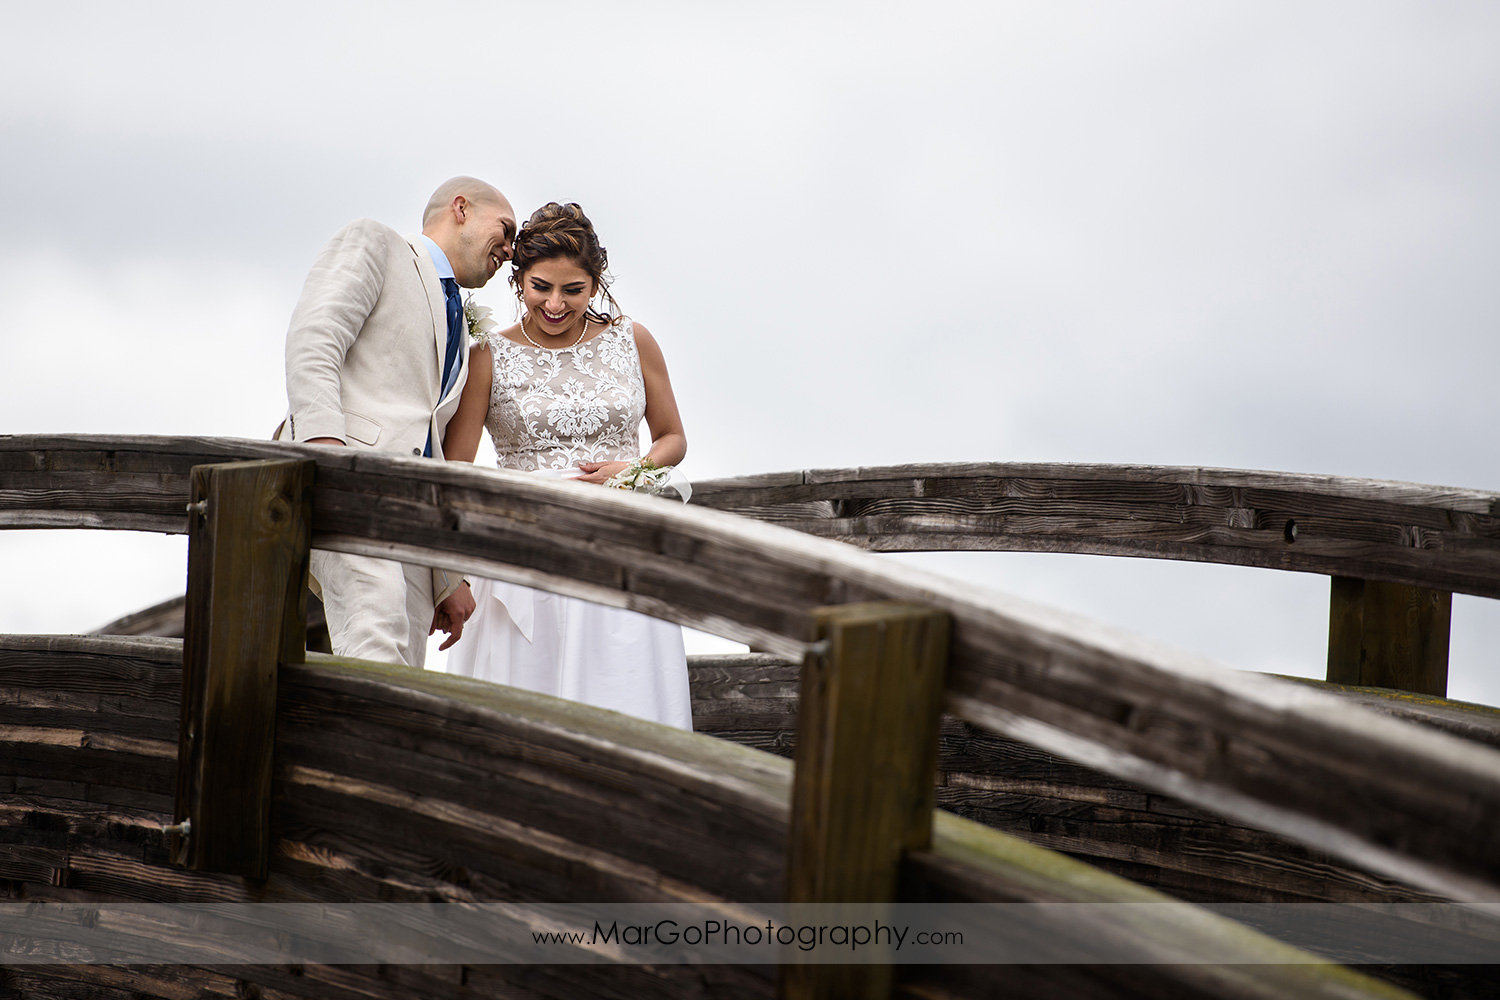 bride and groom together on the bridge at Martinez Regional Shoreline